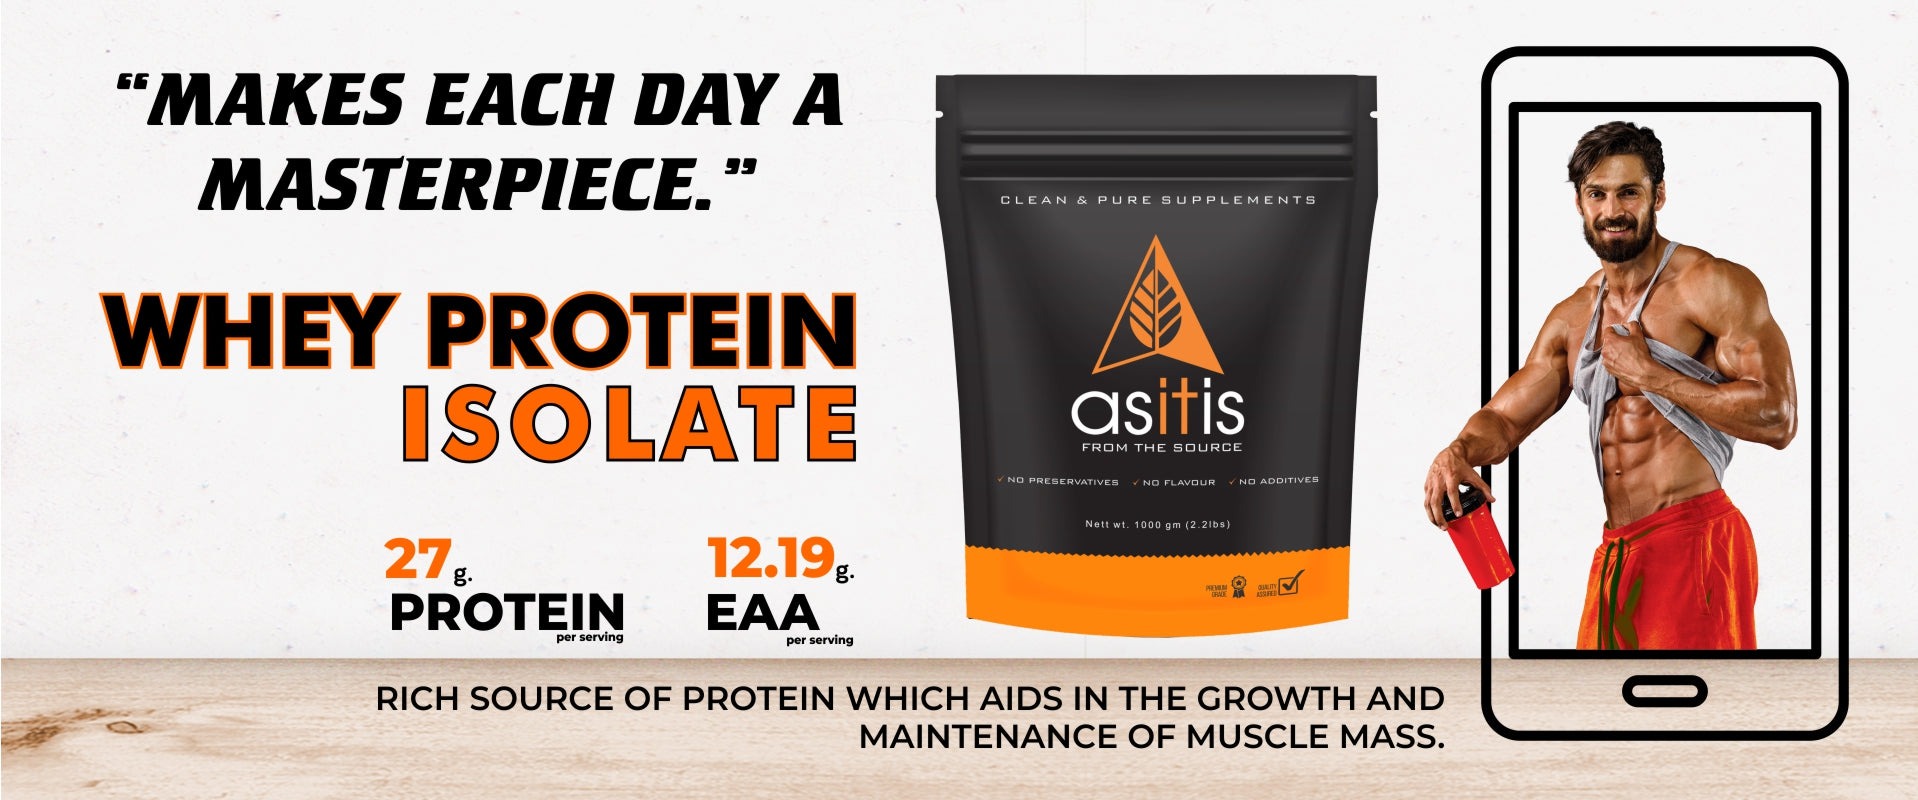 Buy Whey Protein Online, ASITIS, whey protein india, as it is